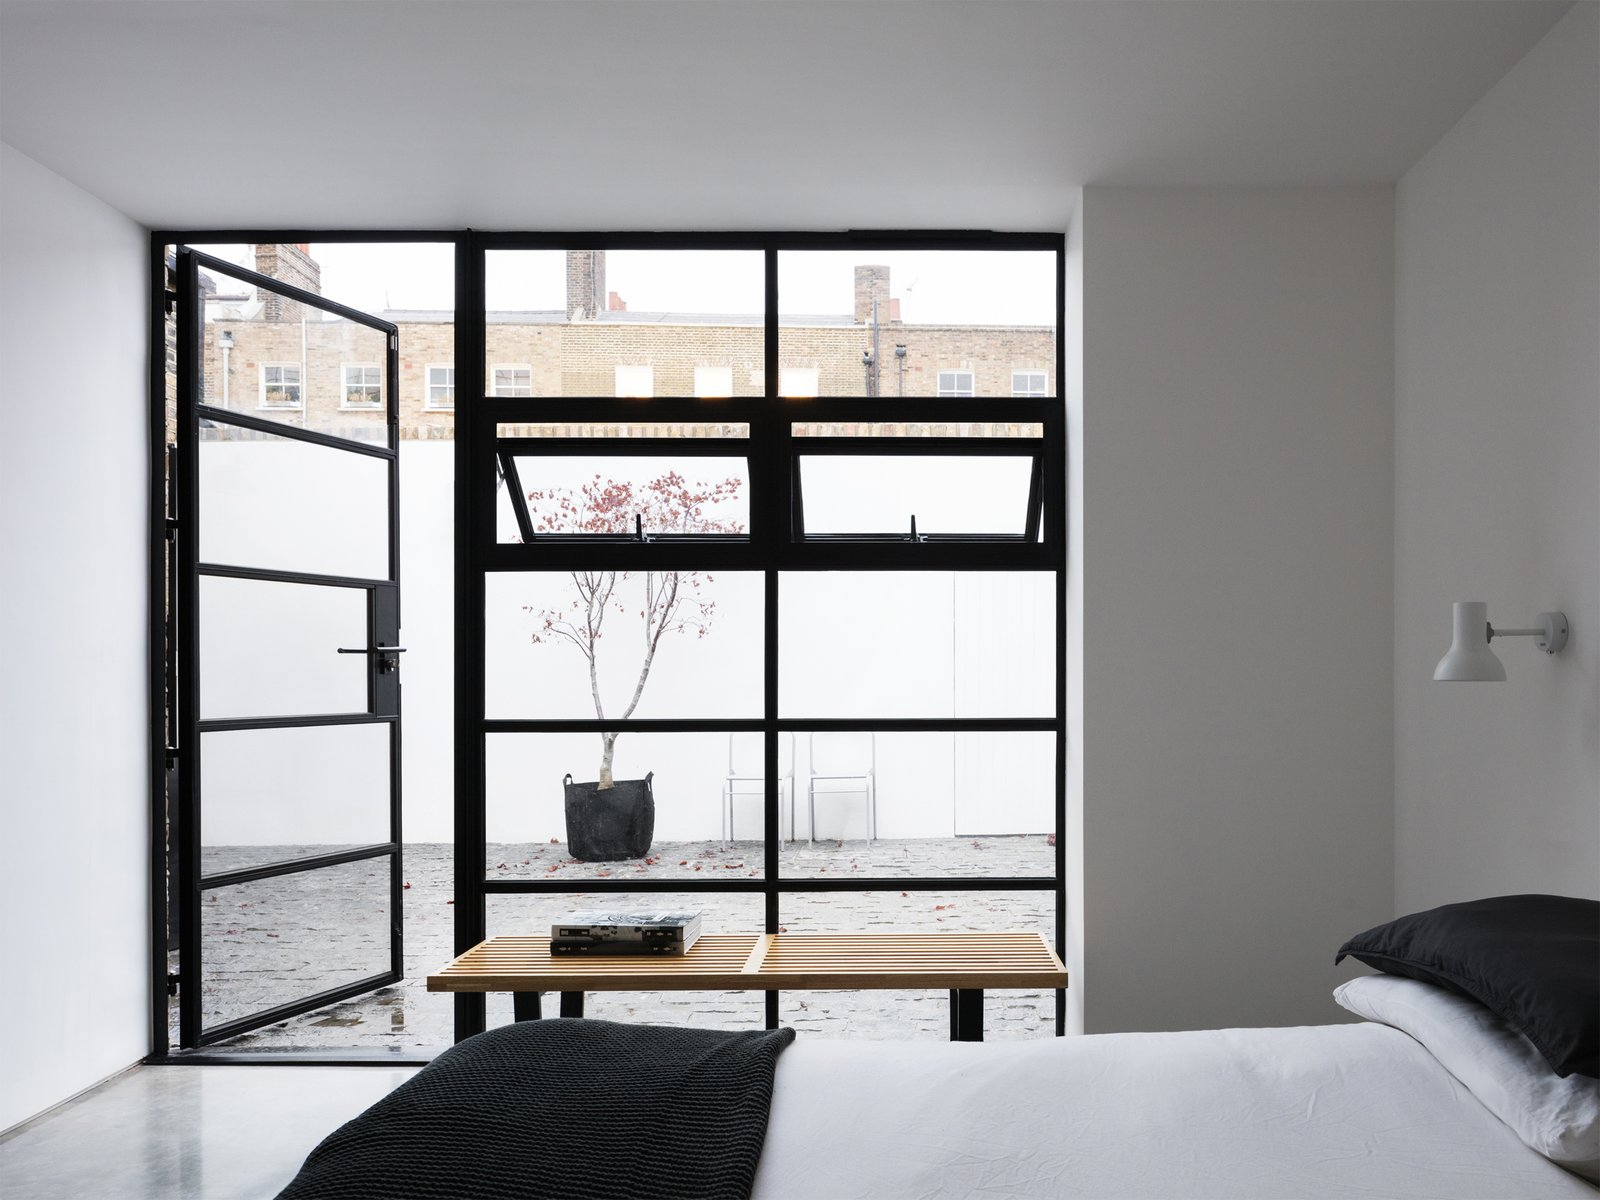 A interior courtyard is accessible from the bedroom, providing an unexpected secluded oasis right in the heart of an urban setting.